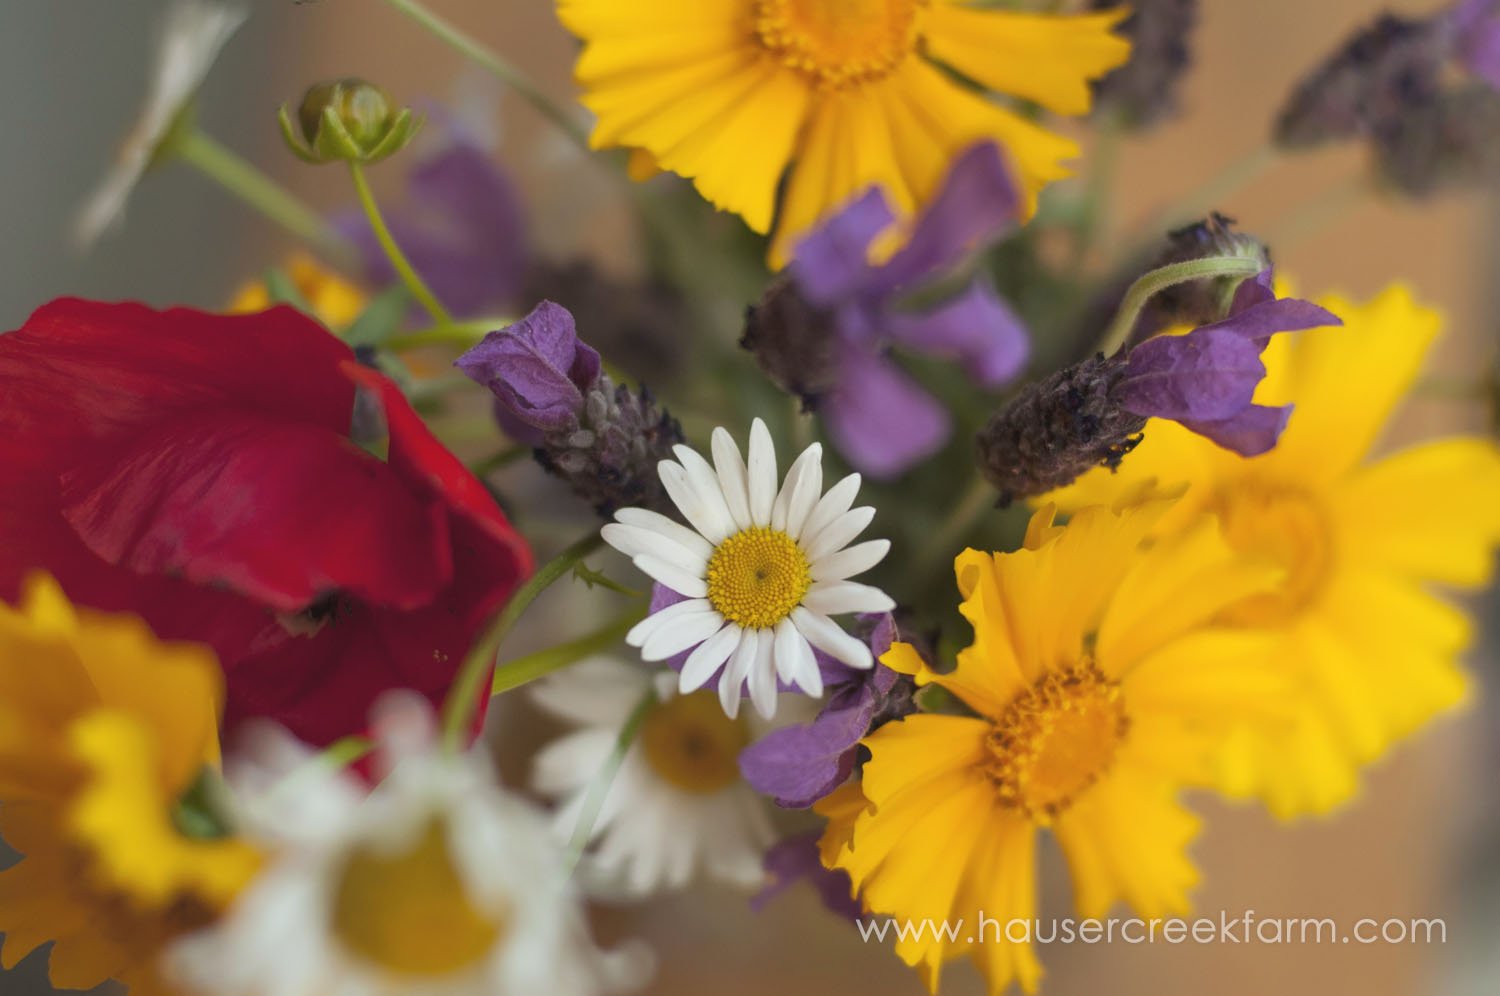 wedding-flowers-hauser-creek-farm-a-photo-by-ashley-0932.jpg